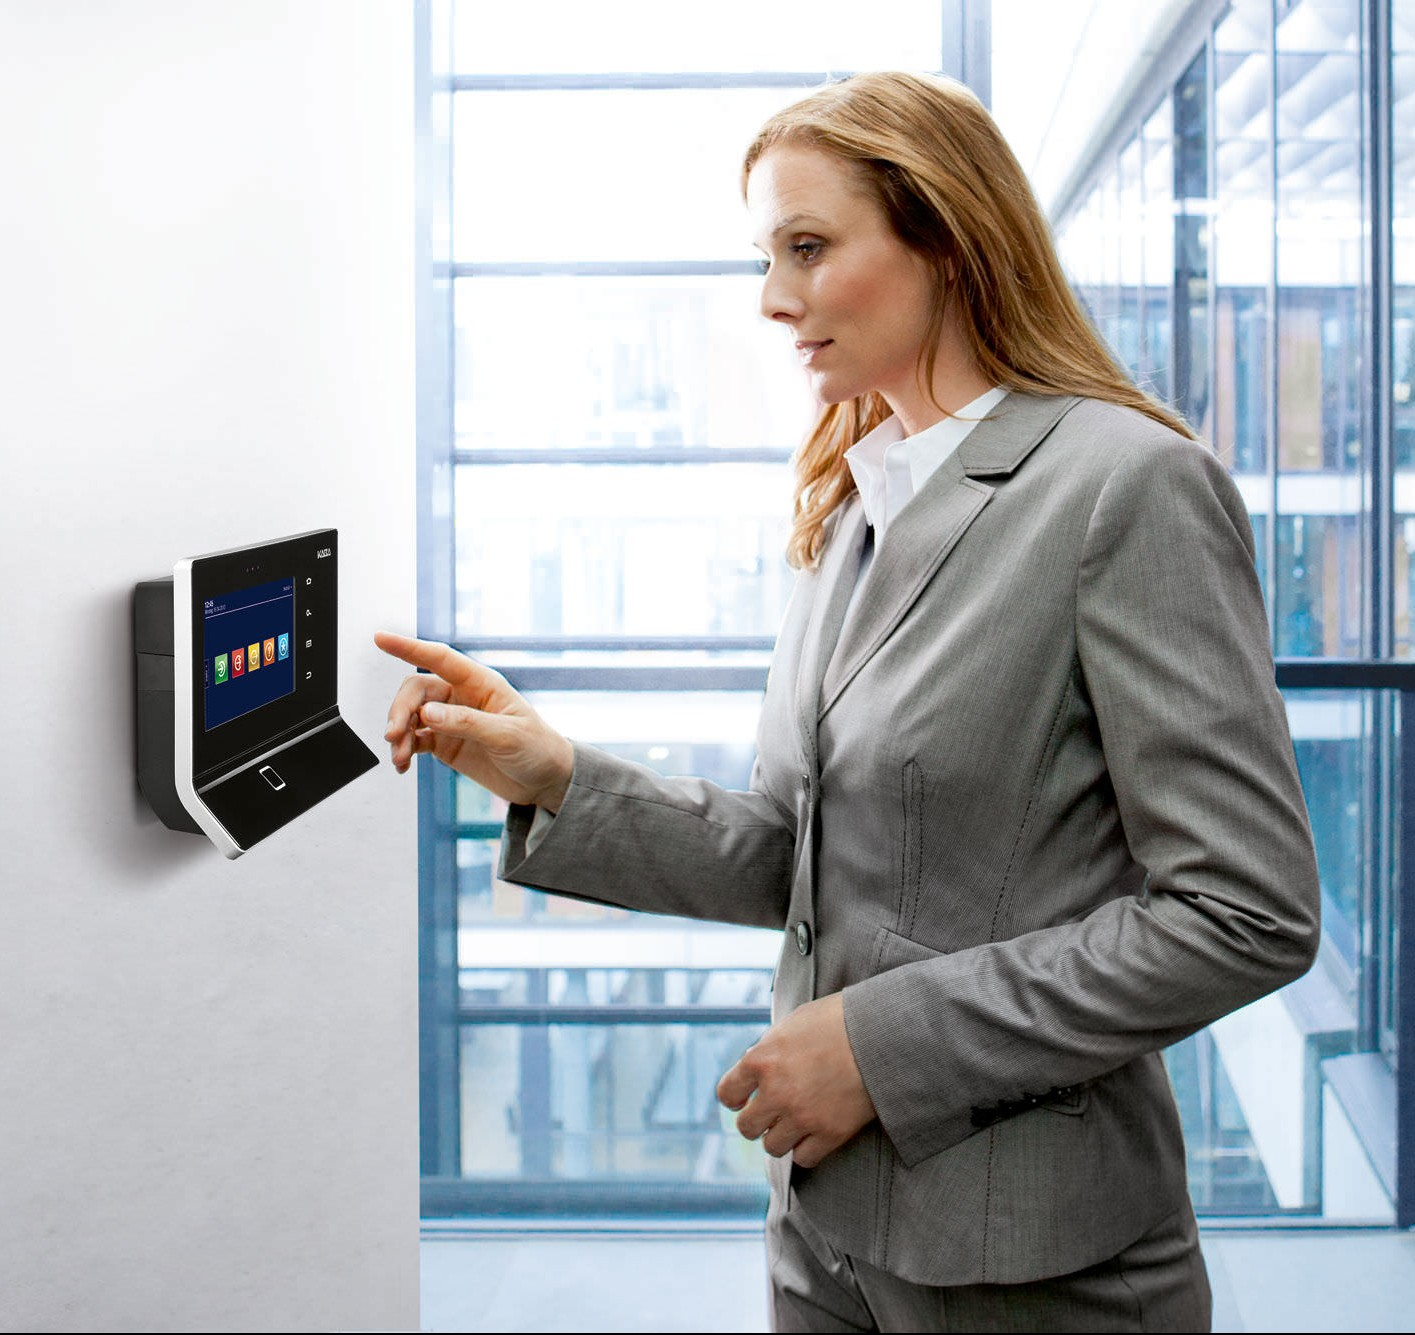 time-attendance-system-centralized-access-control-system-52803-7072549